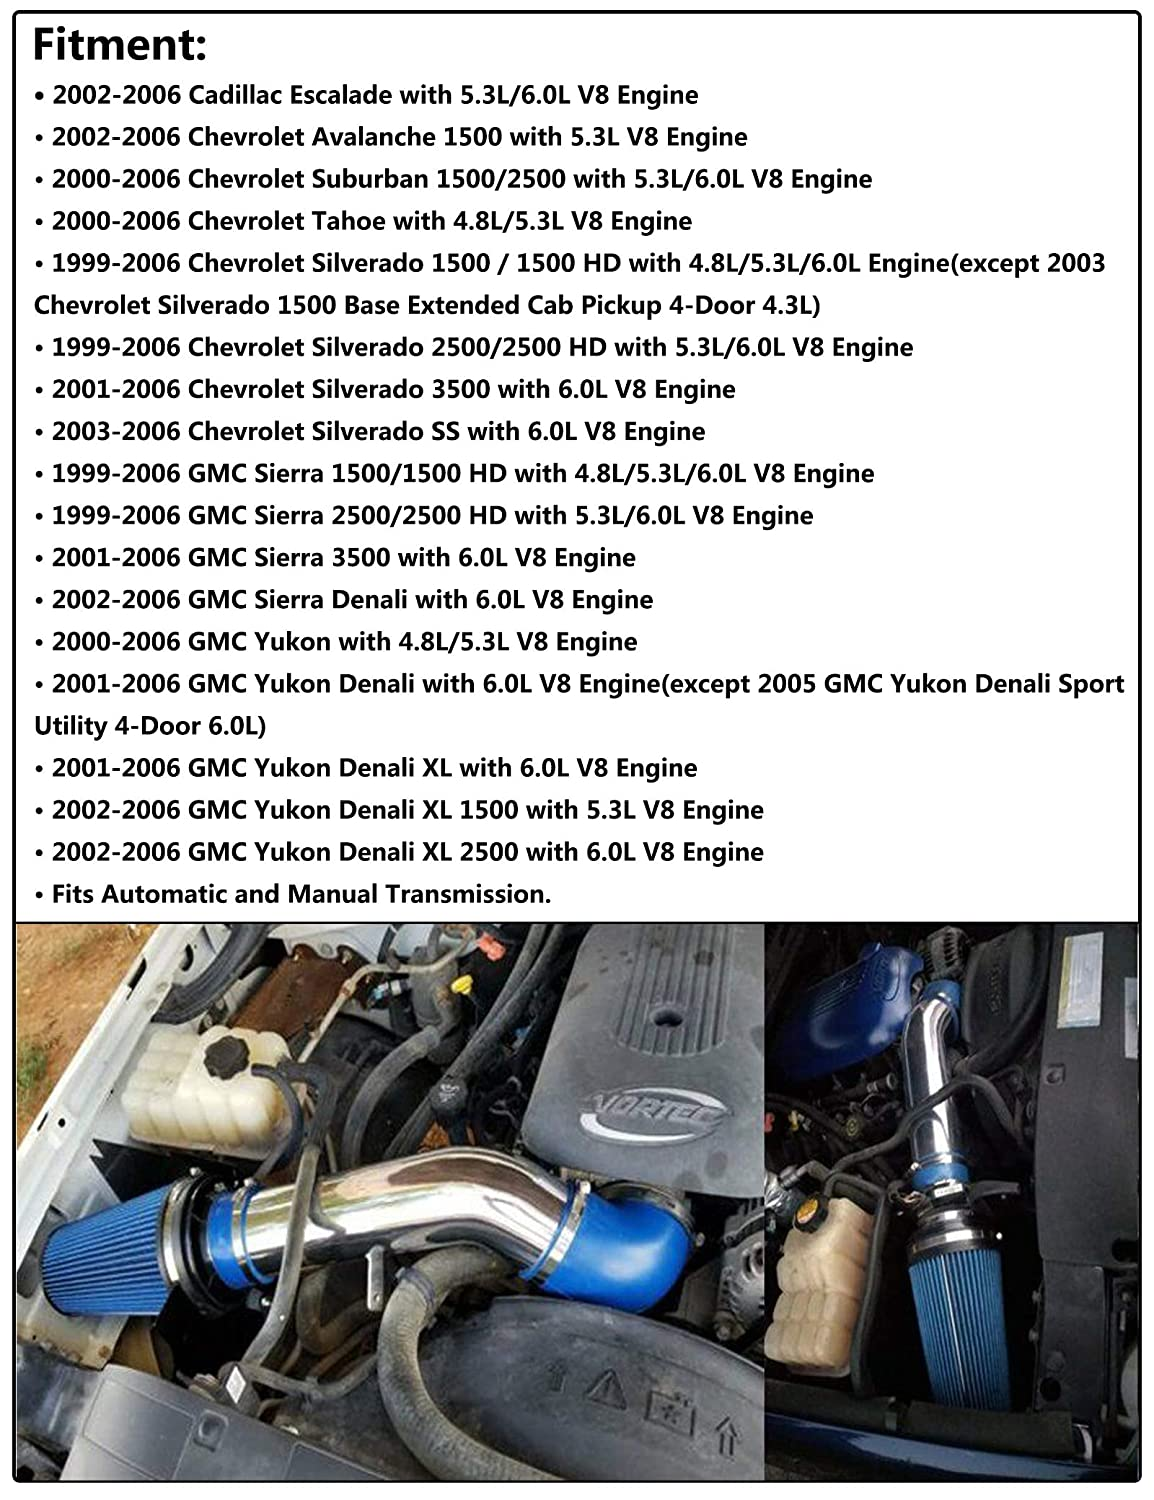 JIUAUTOPARTS 4 Cold Air Intake System Kit with Heat Shield Filte Fit for 1999-2006 Chevy//GMC//Cadillac Avalanche Suburban Tahoe Silverado Sierra Yukon Escalade 4.8L 5.3L 6.0L V8 Blue